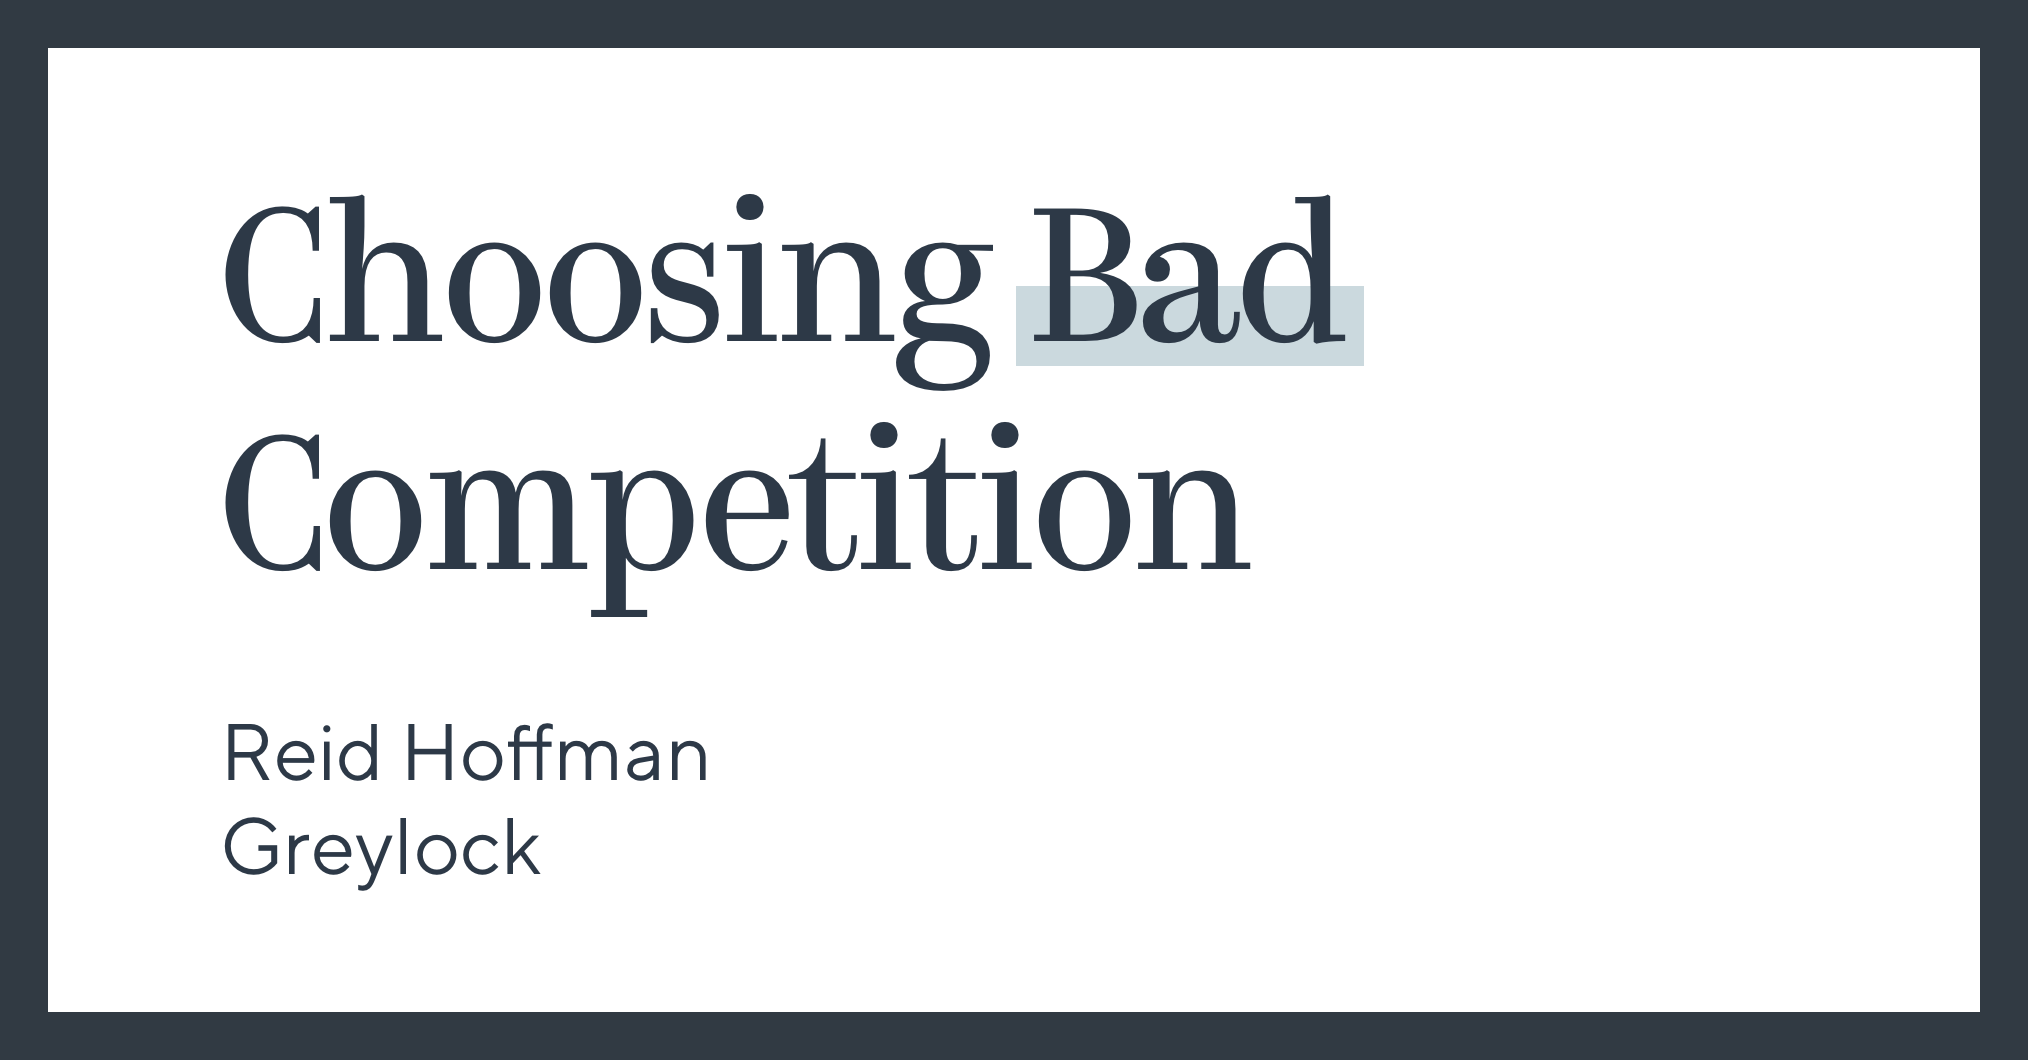 Choosing Bad Competition